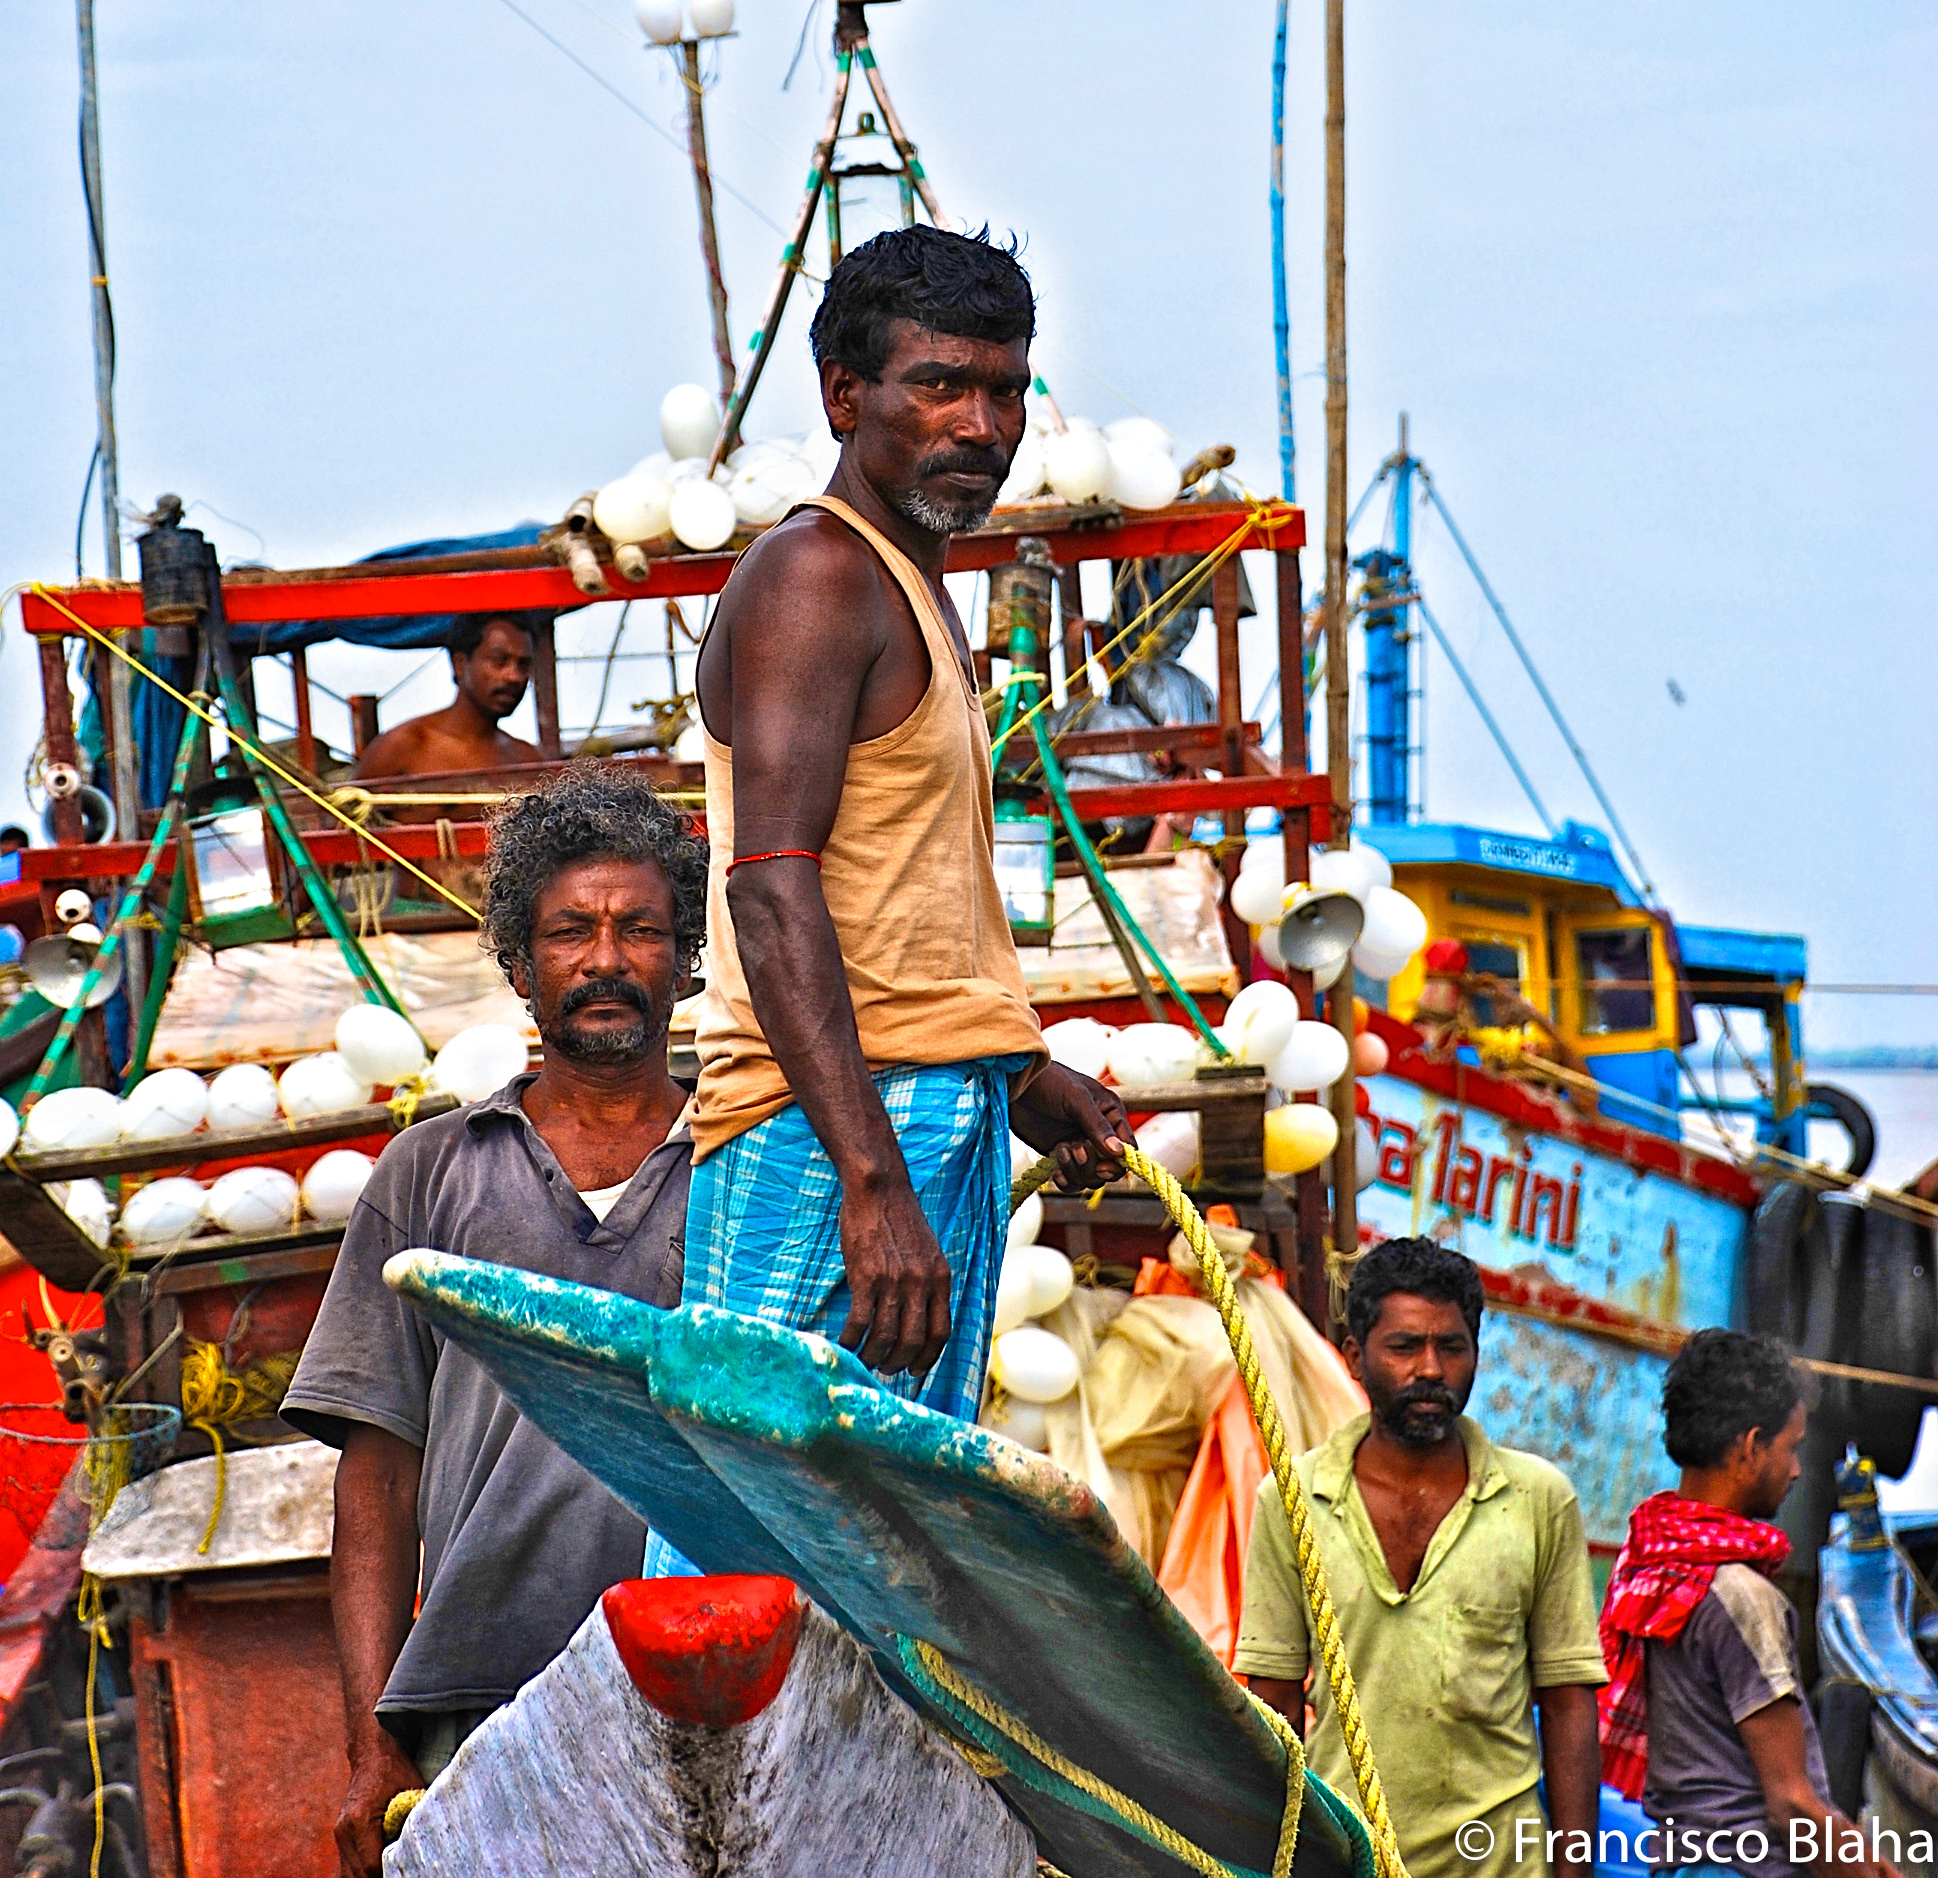 Took this picture while fishing in Coastal trawlers in the Gulf of Bengal in 2008. Marge shares for many days fishing... Really a hard life for those guys